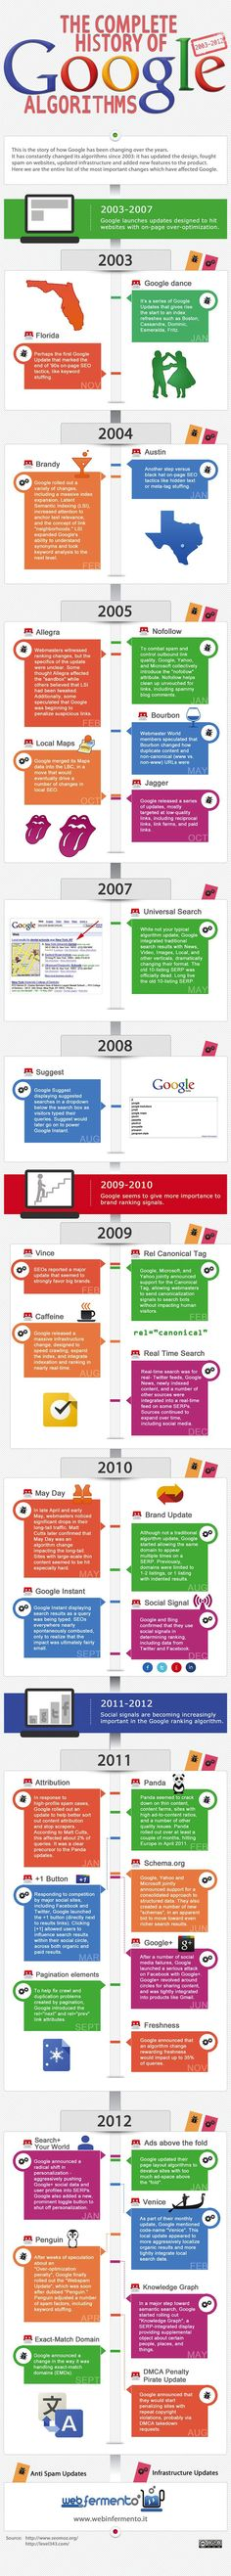 The Complete History of #Google Algorithms